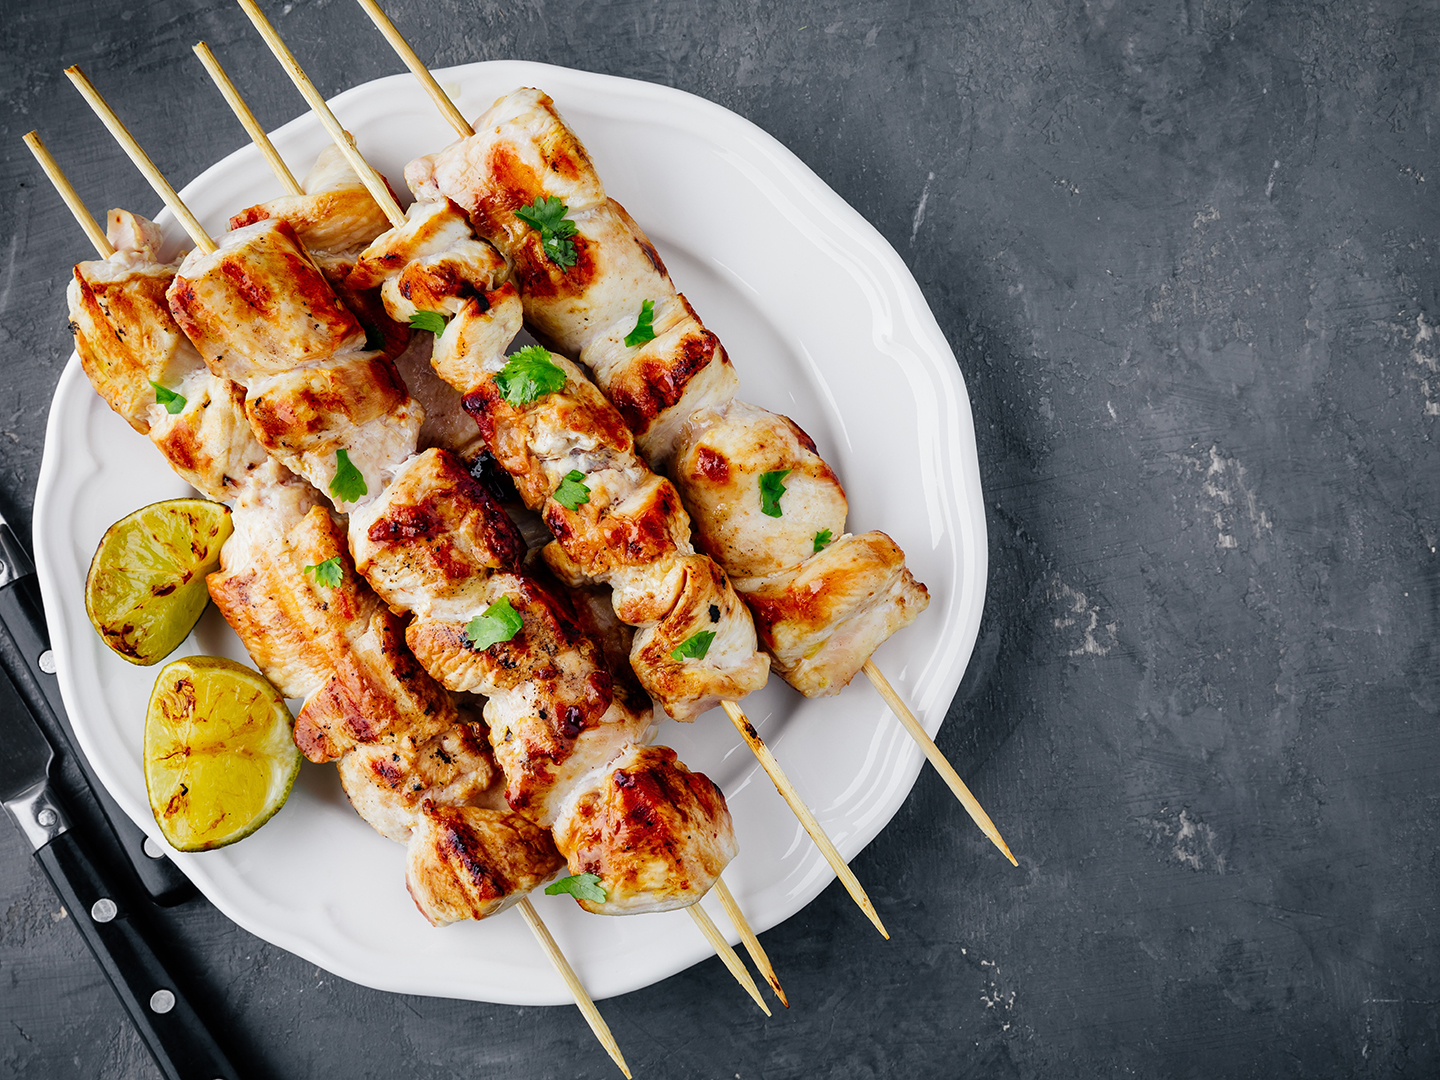 Giada De Laurentiis Shares Surprising Chicken Skewers Recipe Sheknows